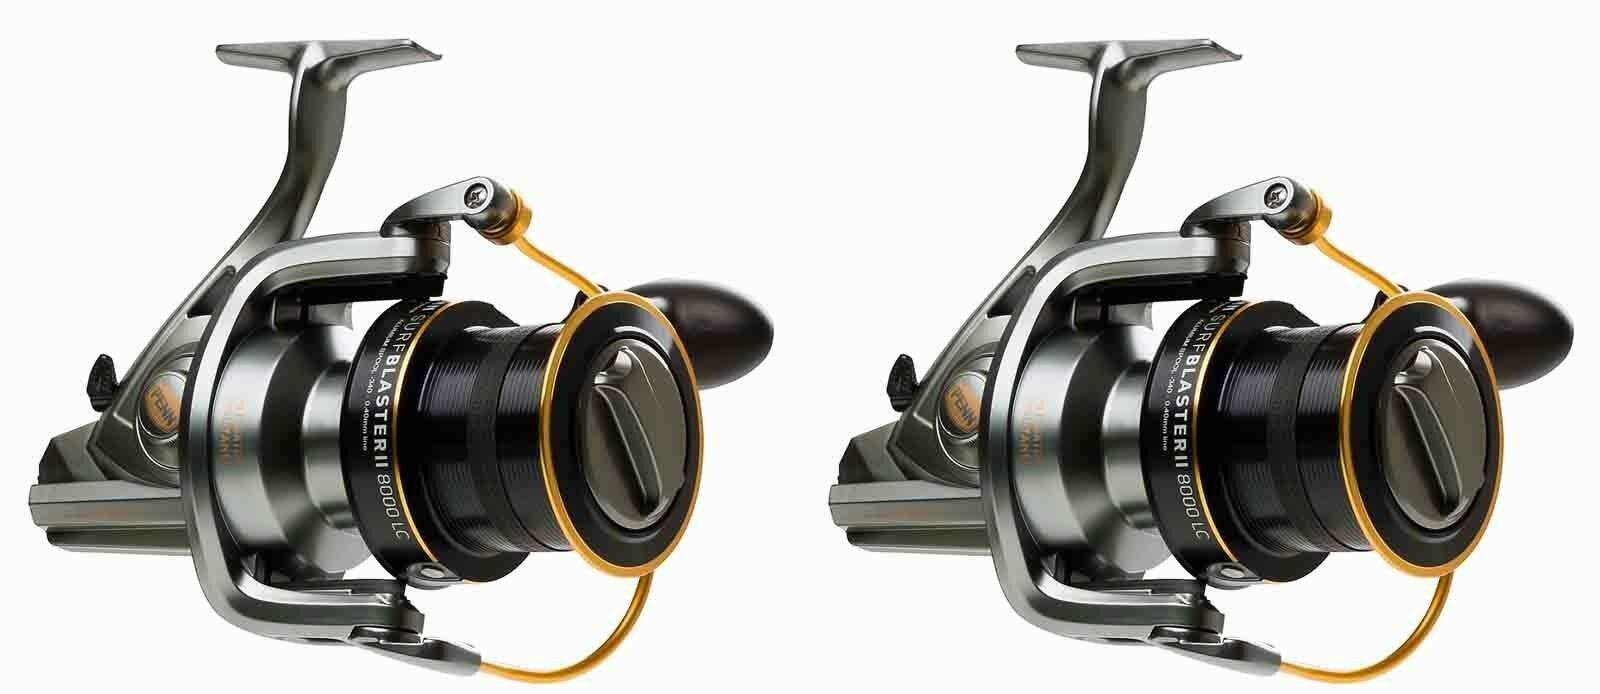 New 2 X Penn Surfblaster 8000 LC Sea Spin Fishing Fixed Spool Reel - 2 X Reels